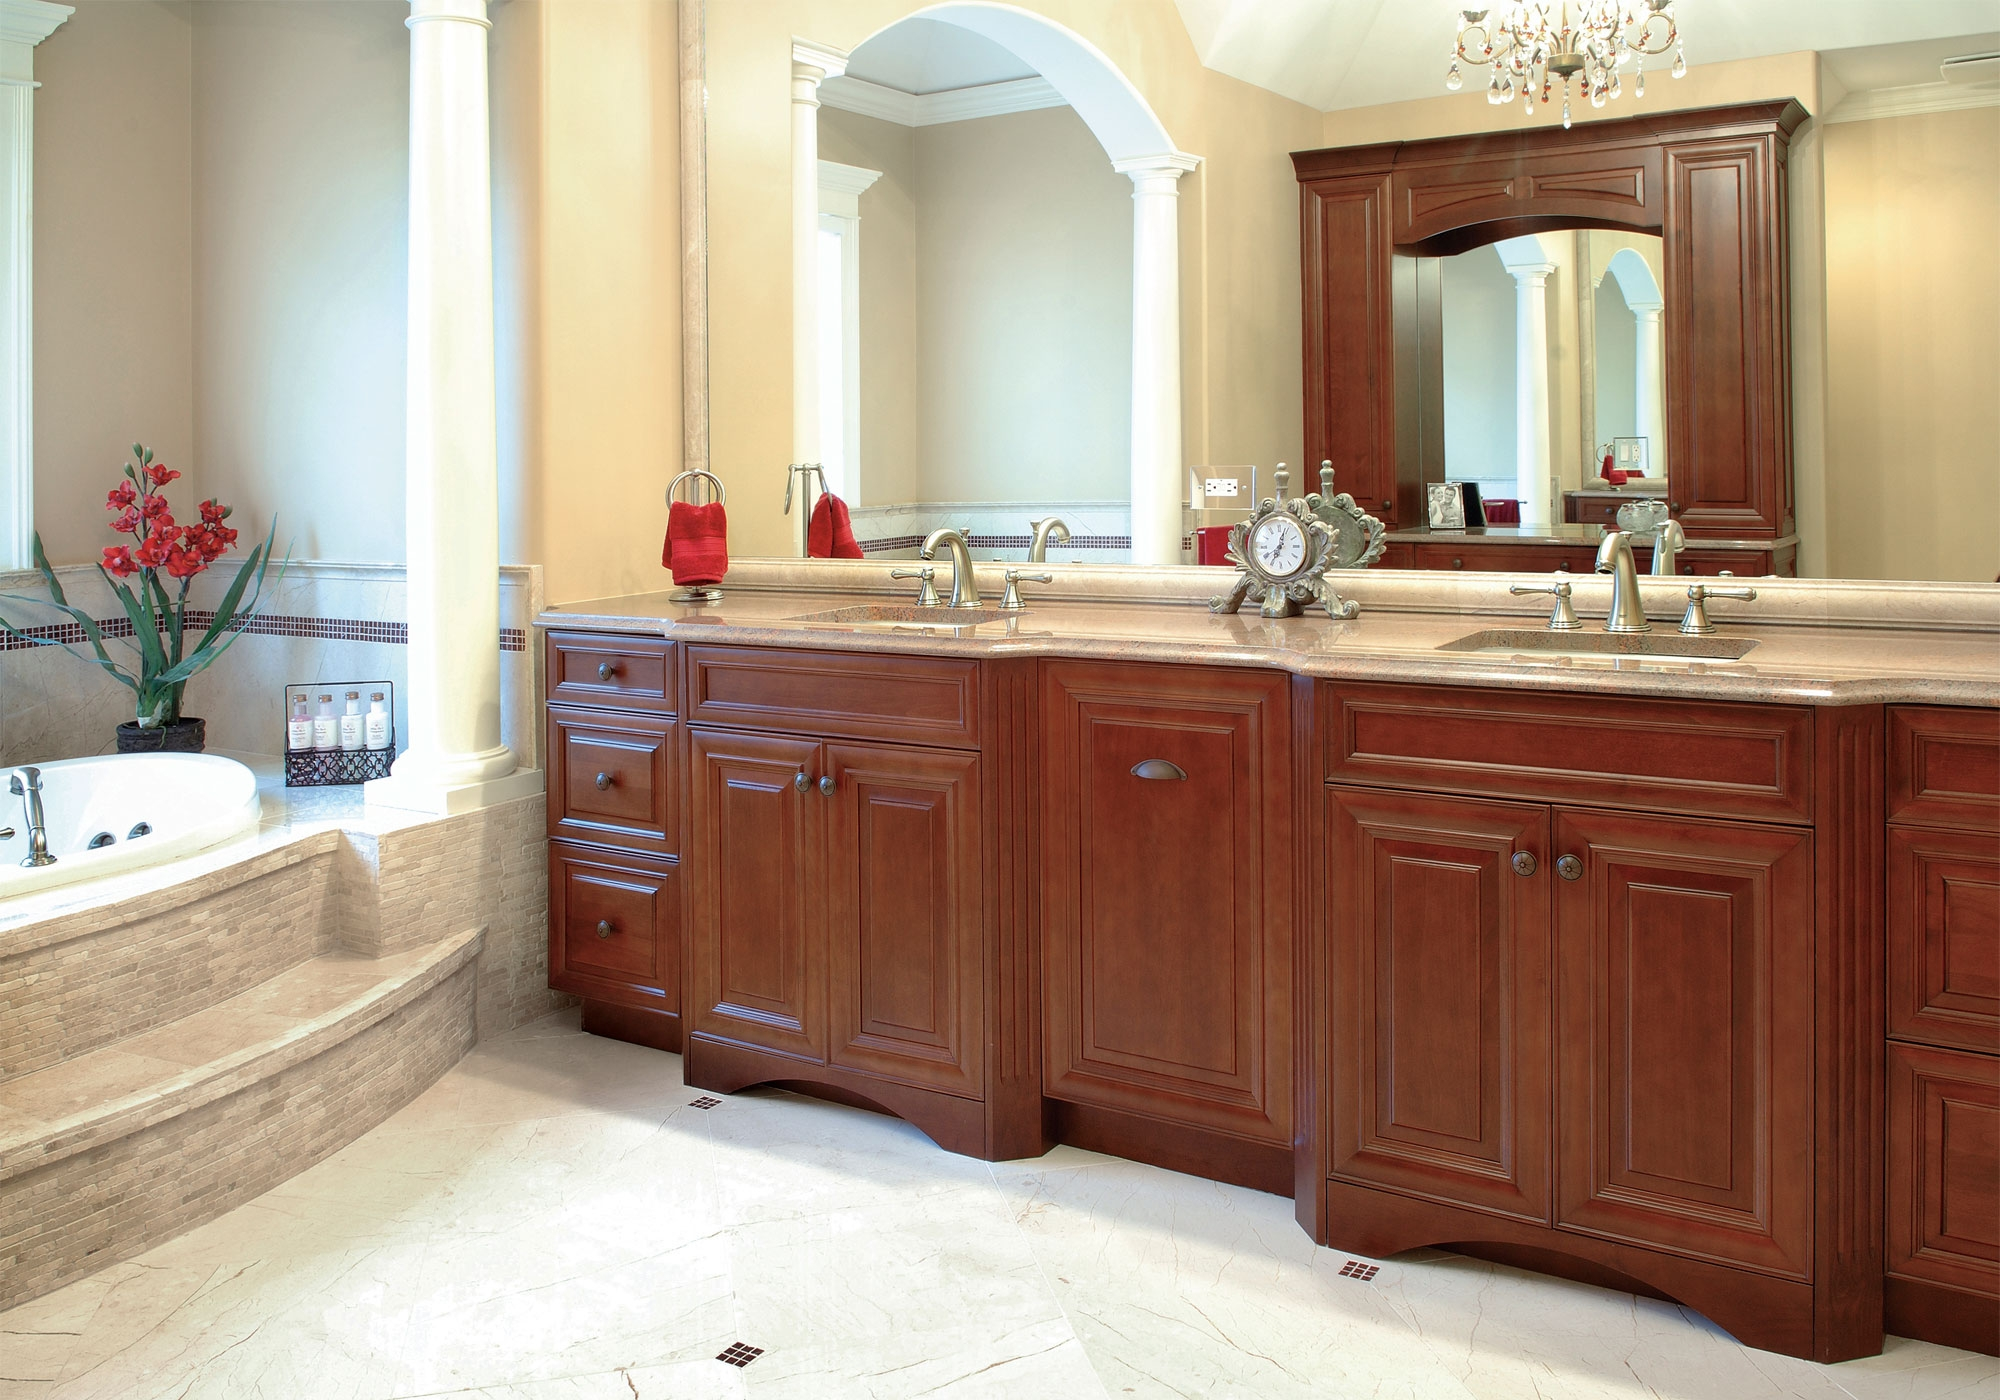 Custom Cabinets For Bathrooms And Vanitieskitchen cabinets bathroom vanity cabinets advanced cabinets